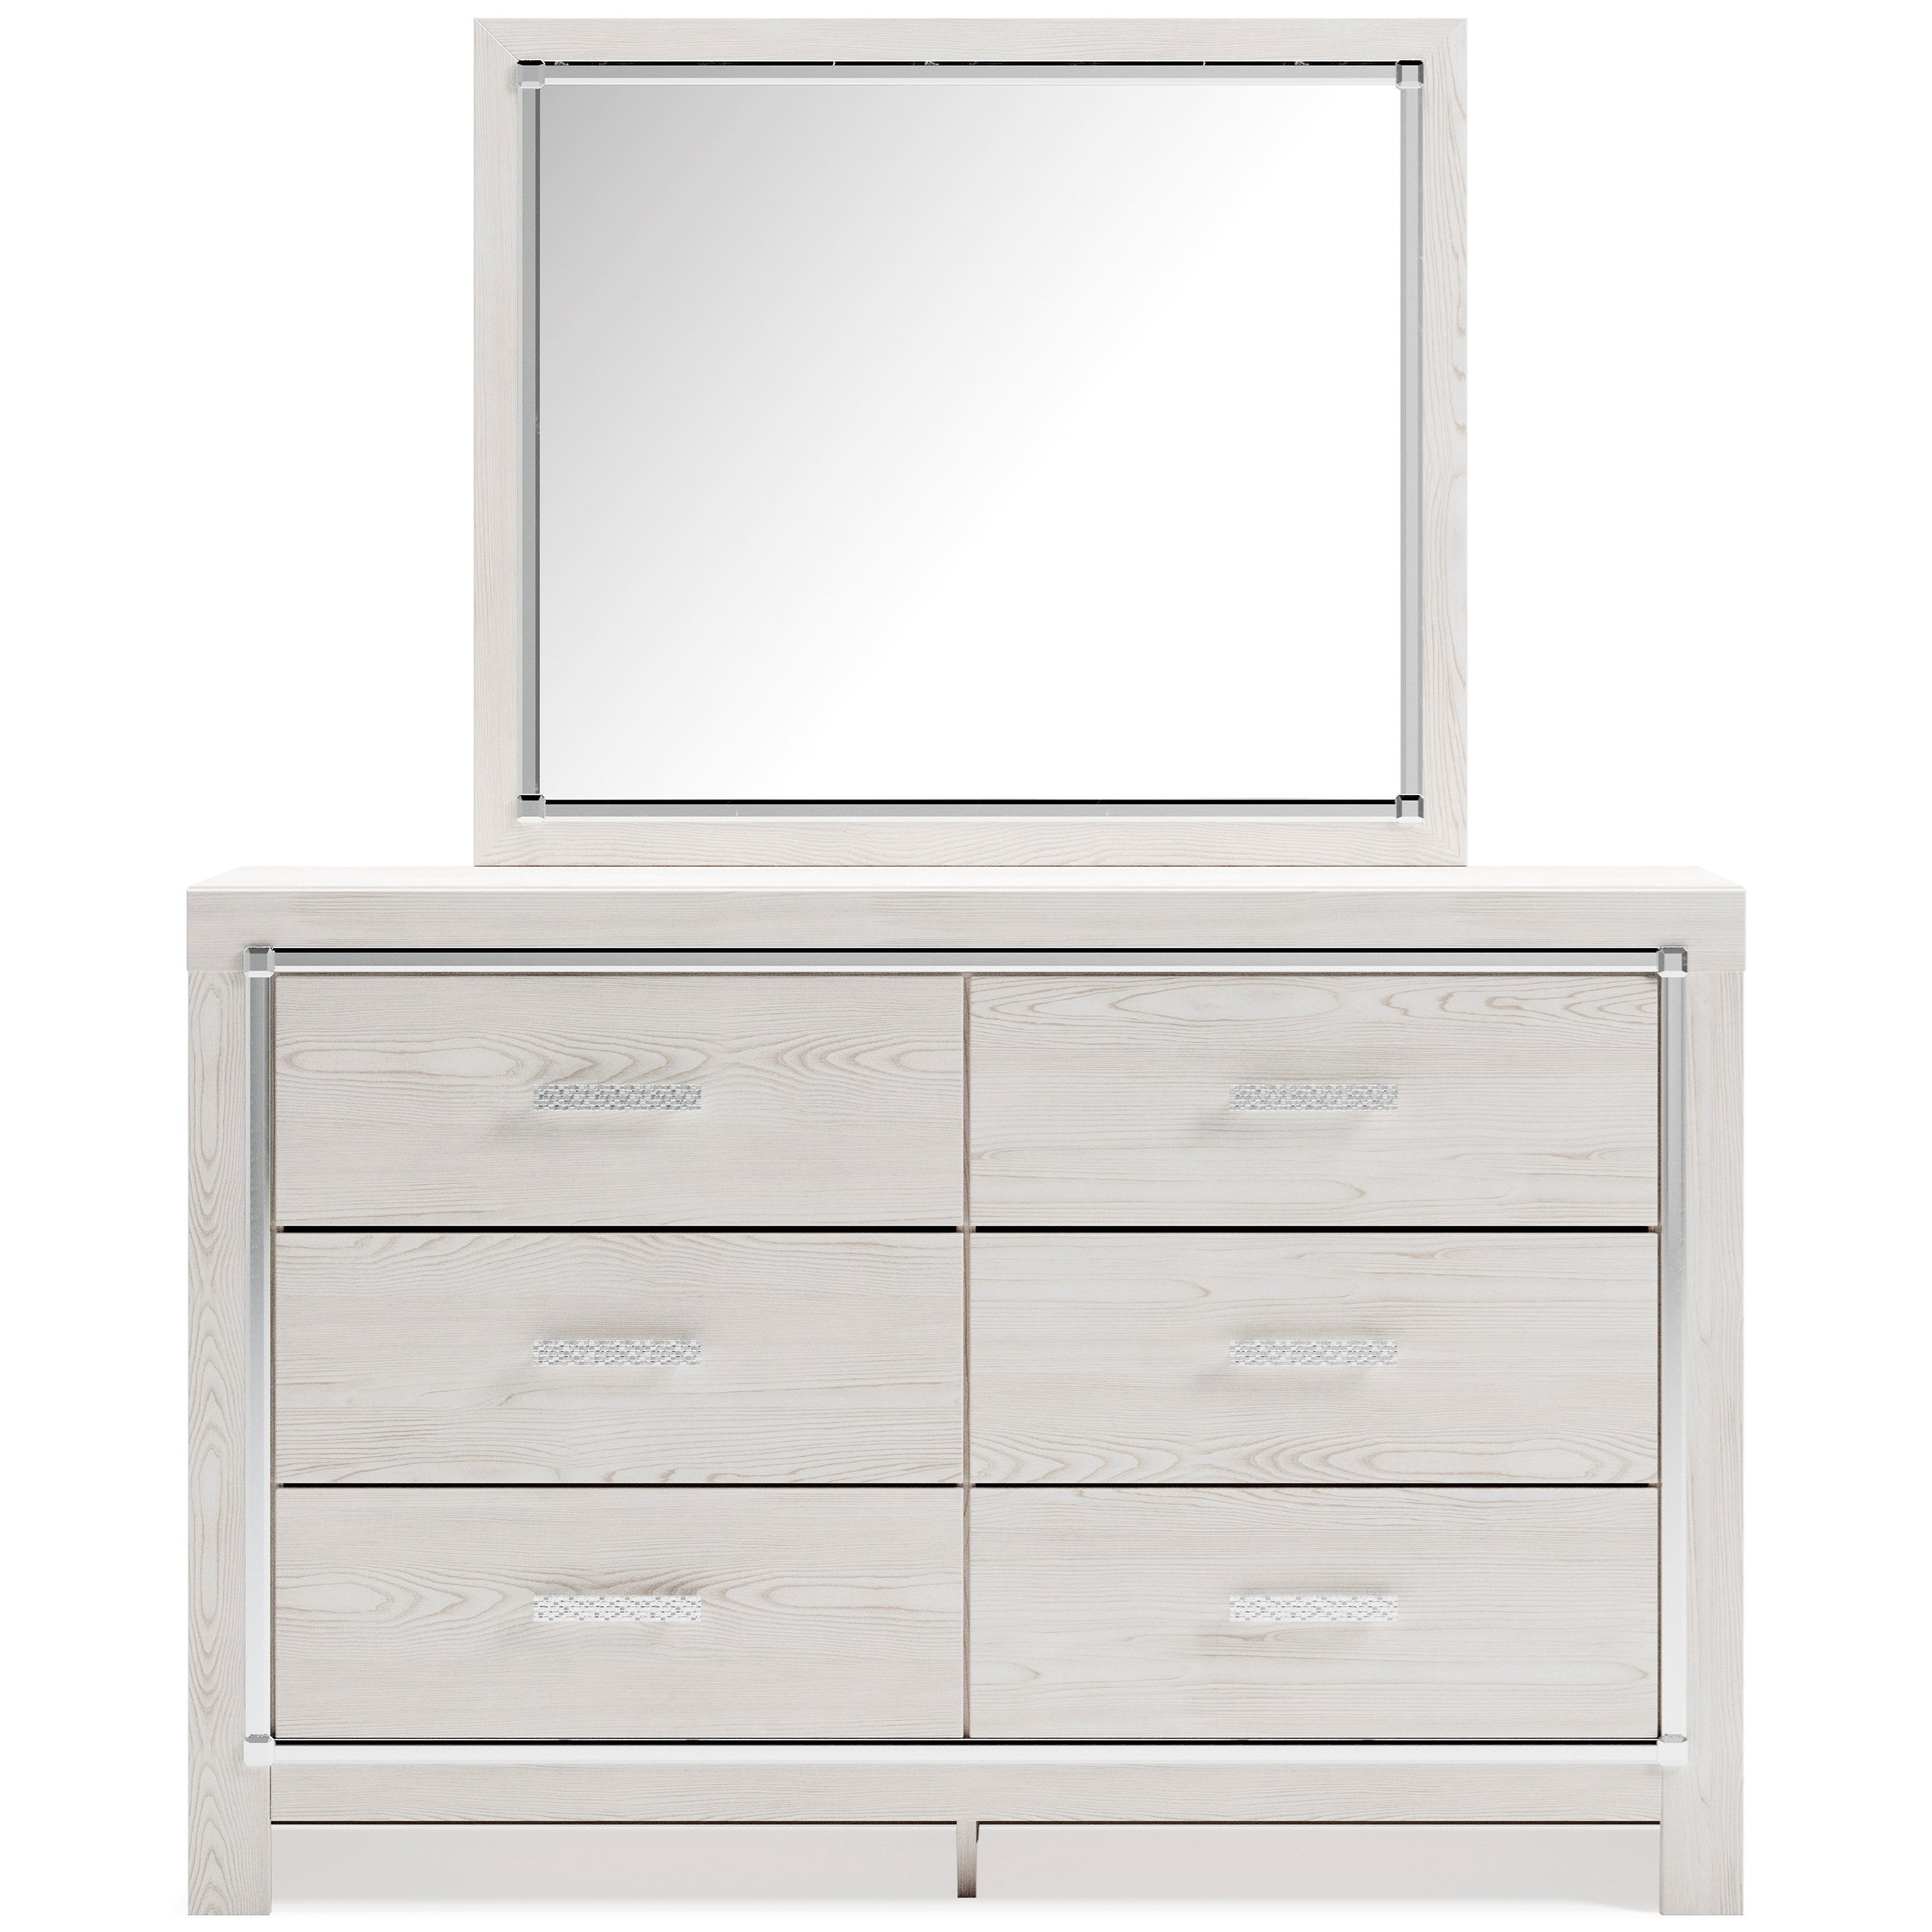 Altyra Dresser & Bedroom Mirror by Signature Design by Ashley at Gill Brothers Furniture